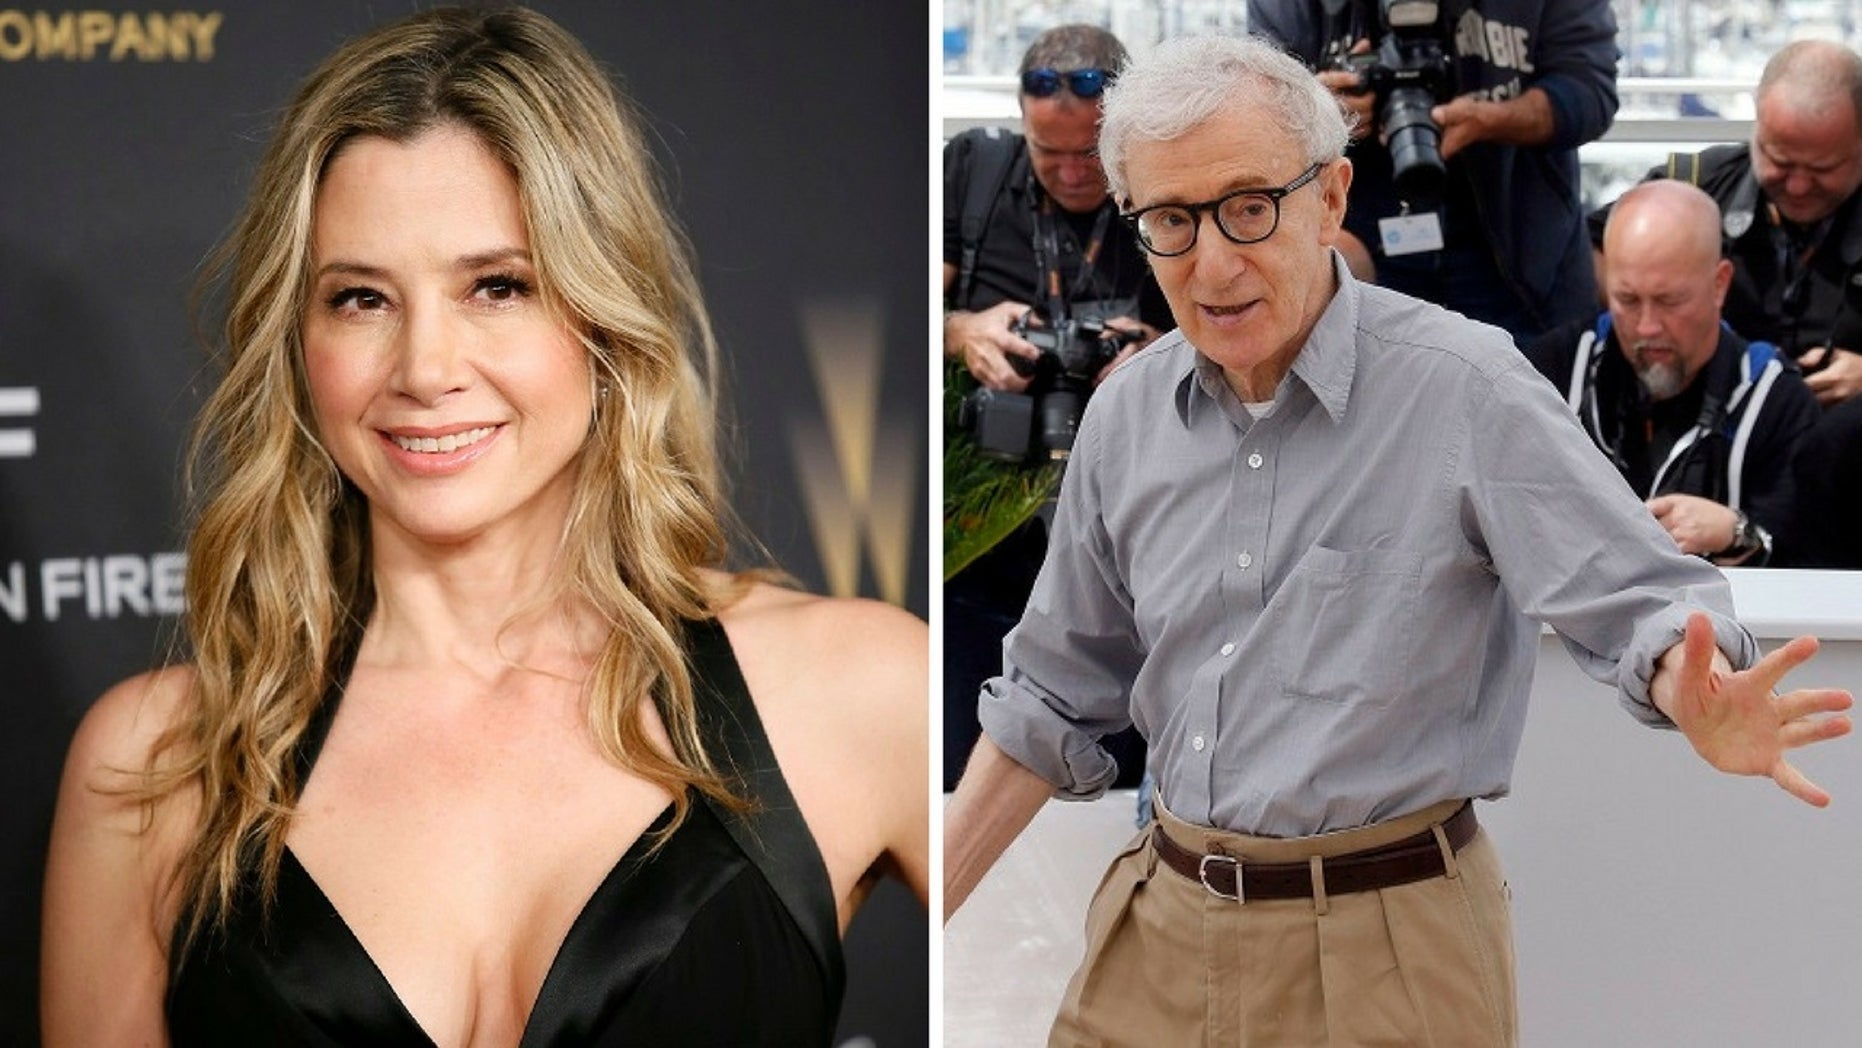 Mira Sorvino penned a letter telling Dylan Farrow she believed her sexual abuse allegations against her adoptive father Woody Allen.